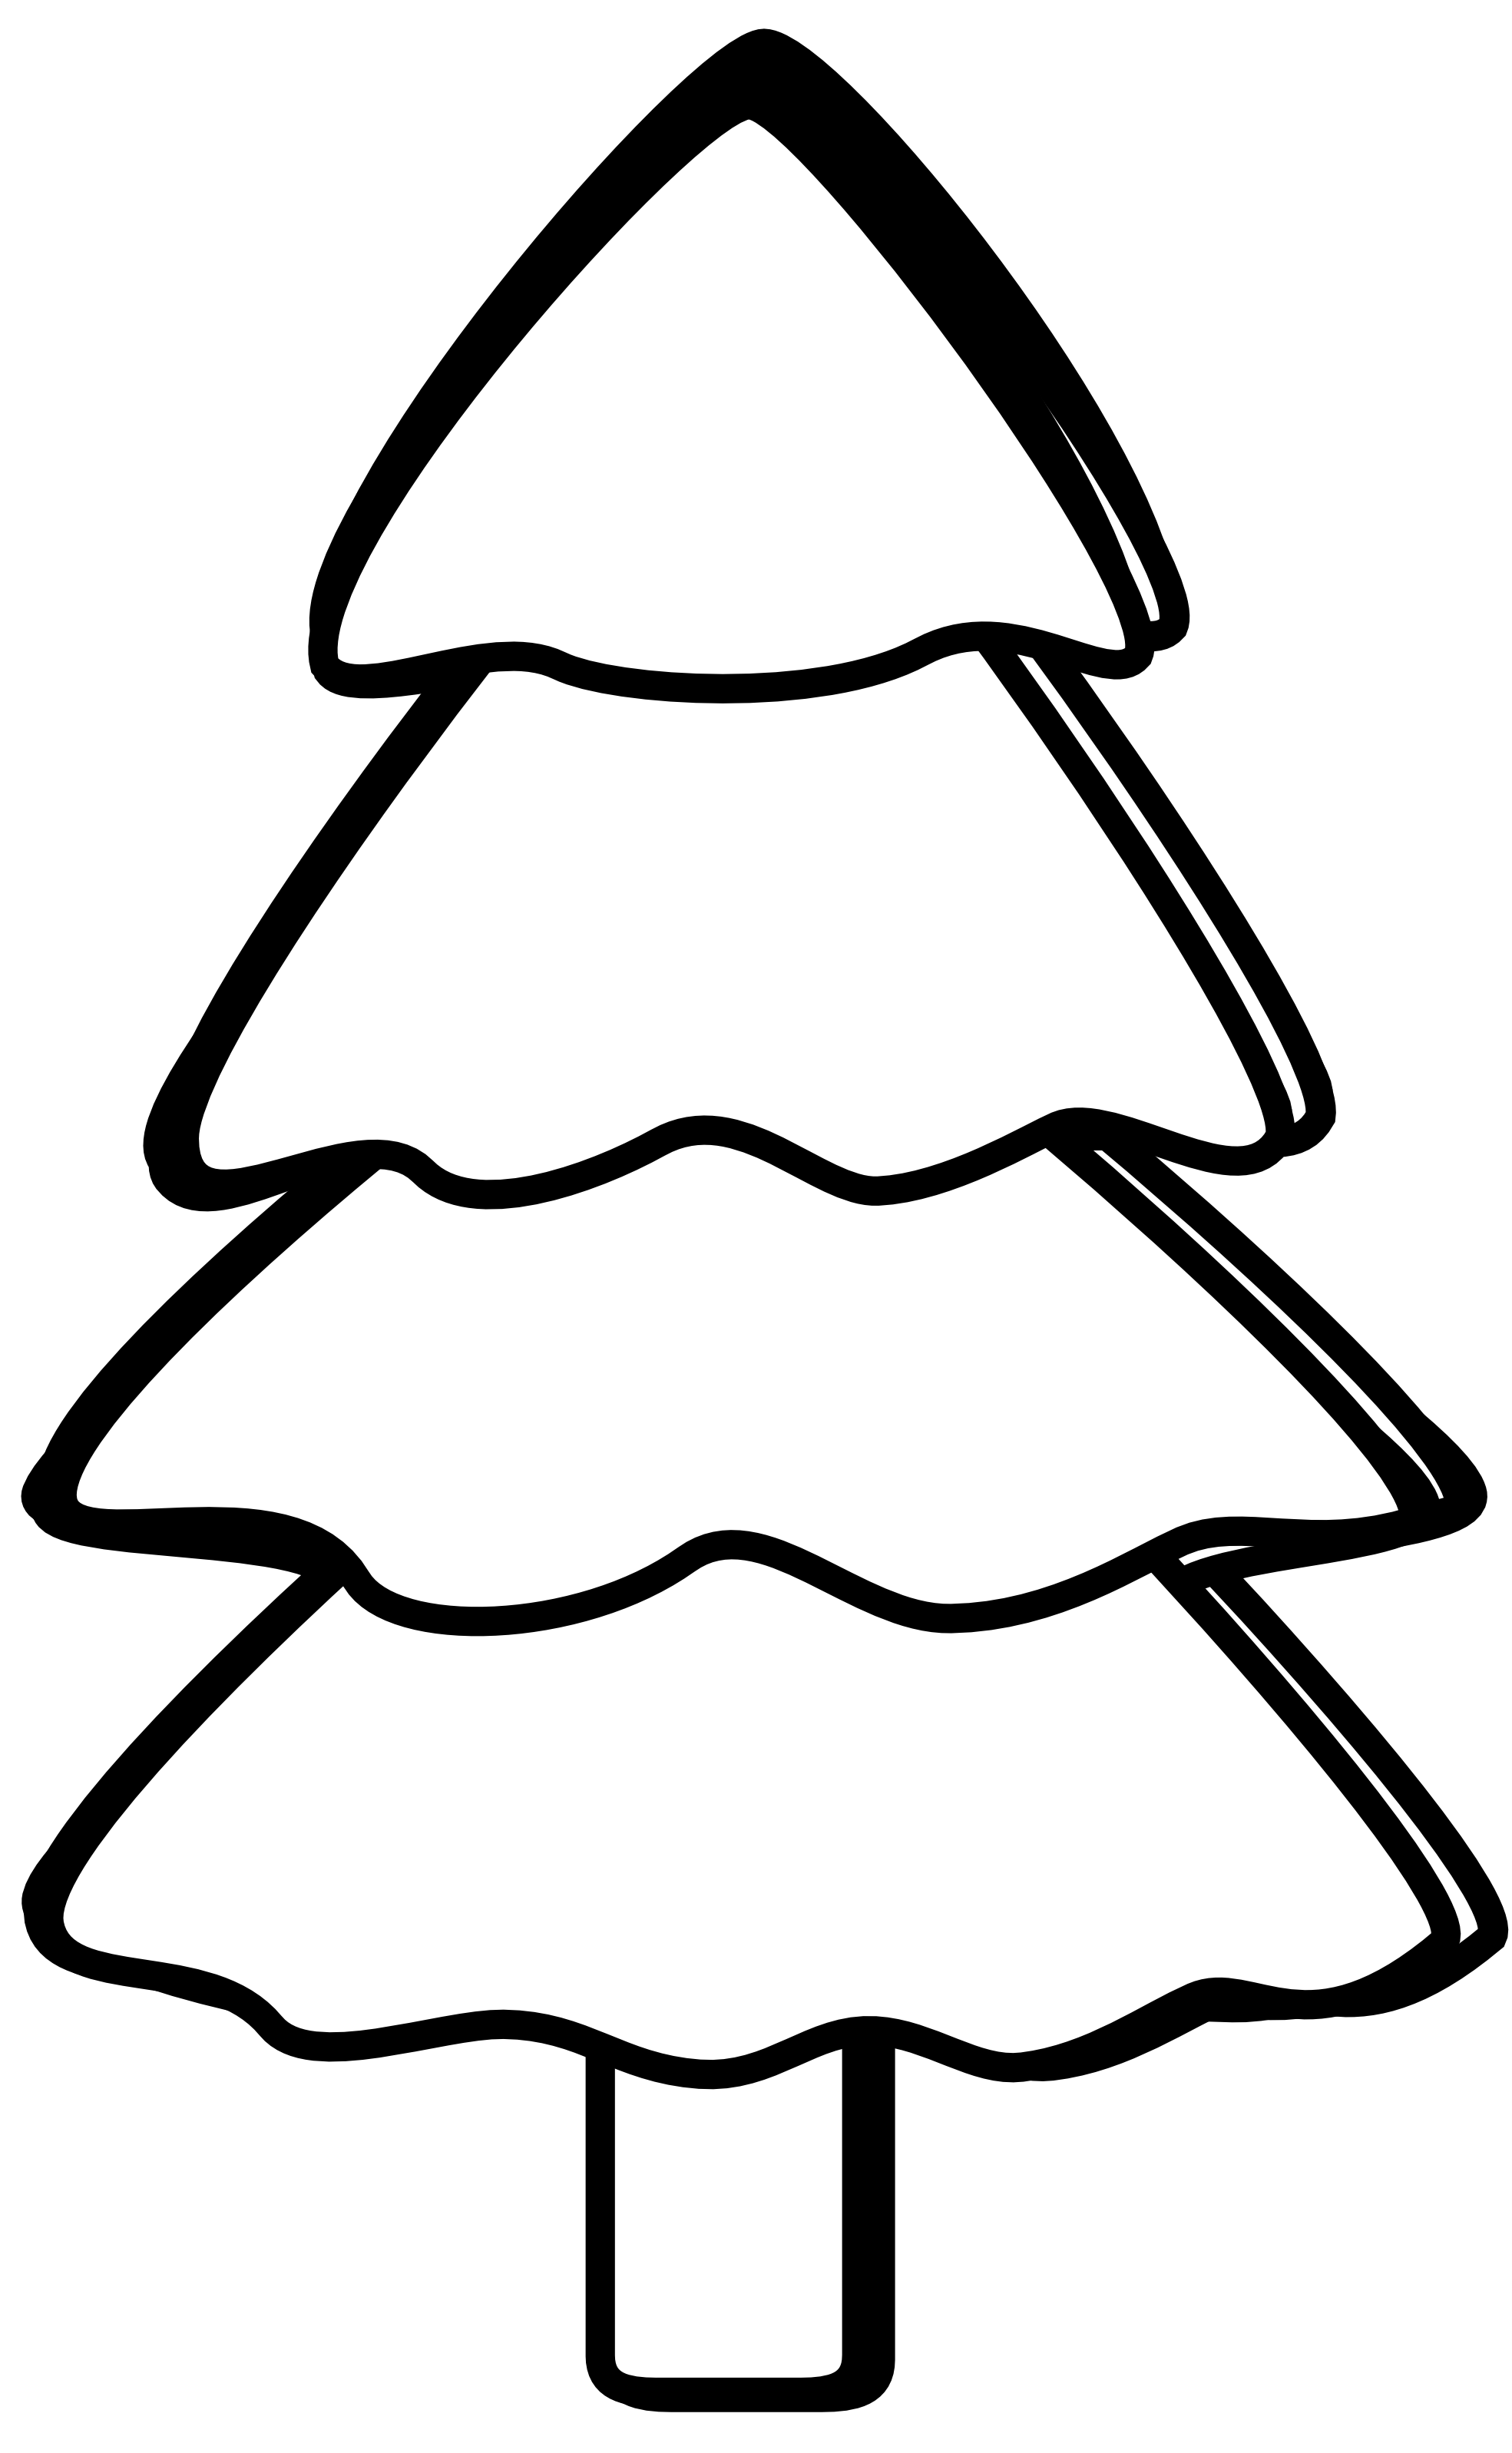 Black & White clipart tree Free Drawing Black library Clipart